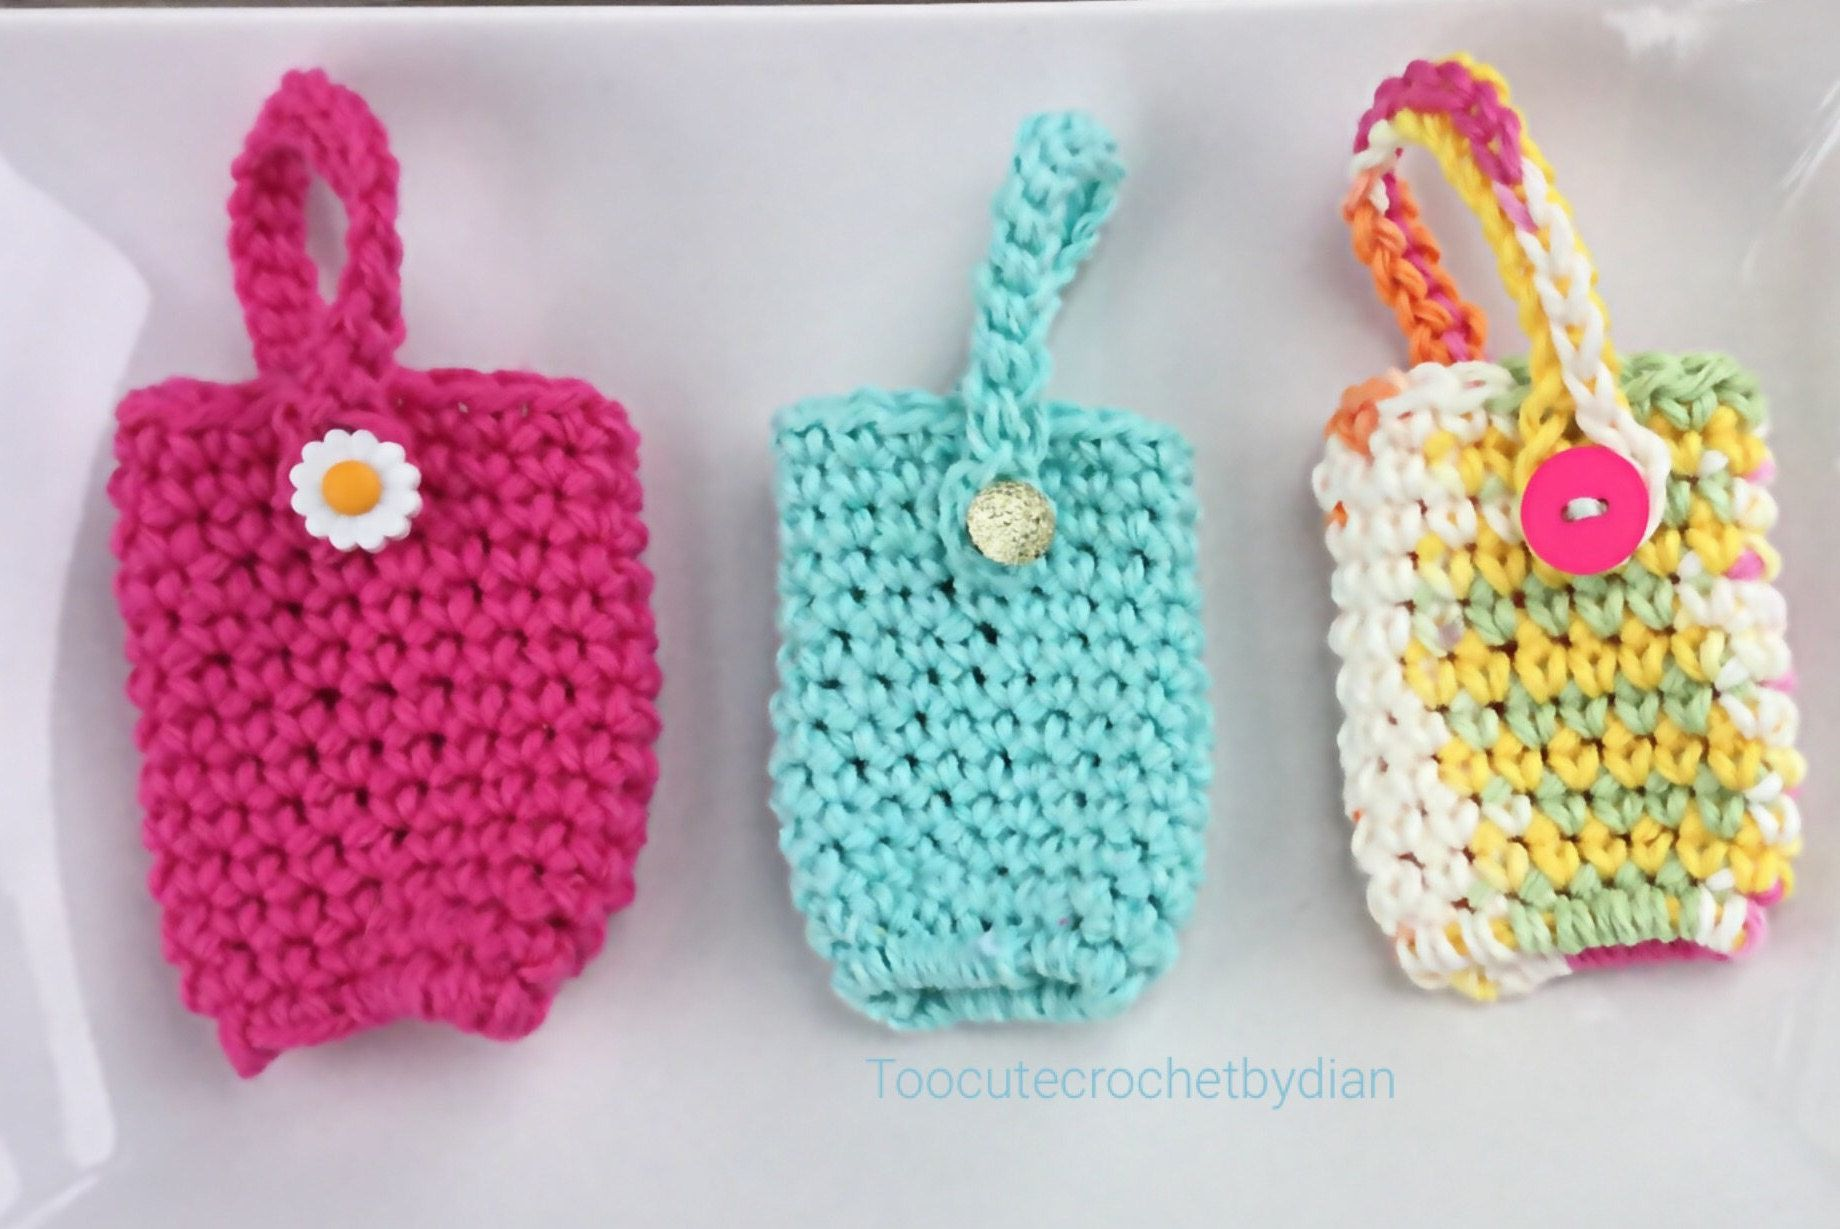 Crochet Hand Sanitizer Holder Hand Sanitizer Cozy Cozy For Your